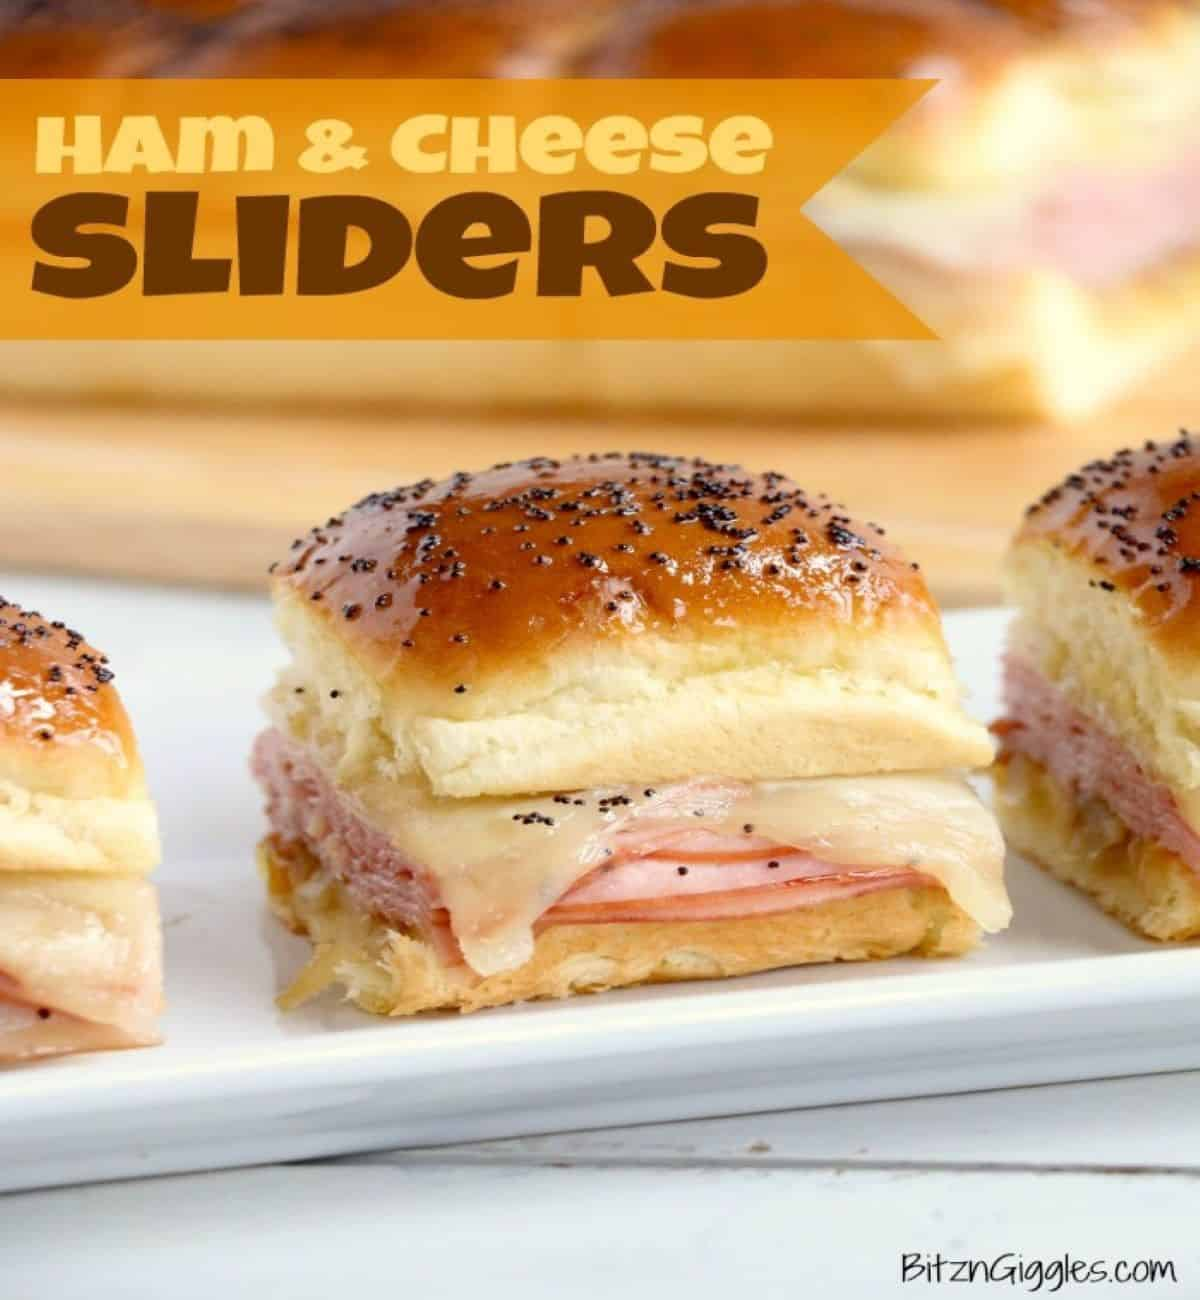 ham and cheese slider sandwiches on a plate.